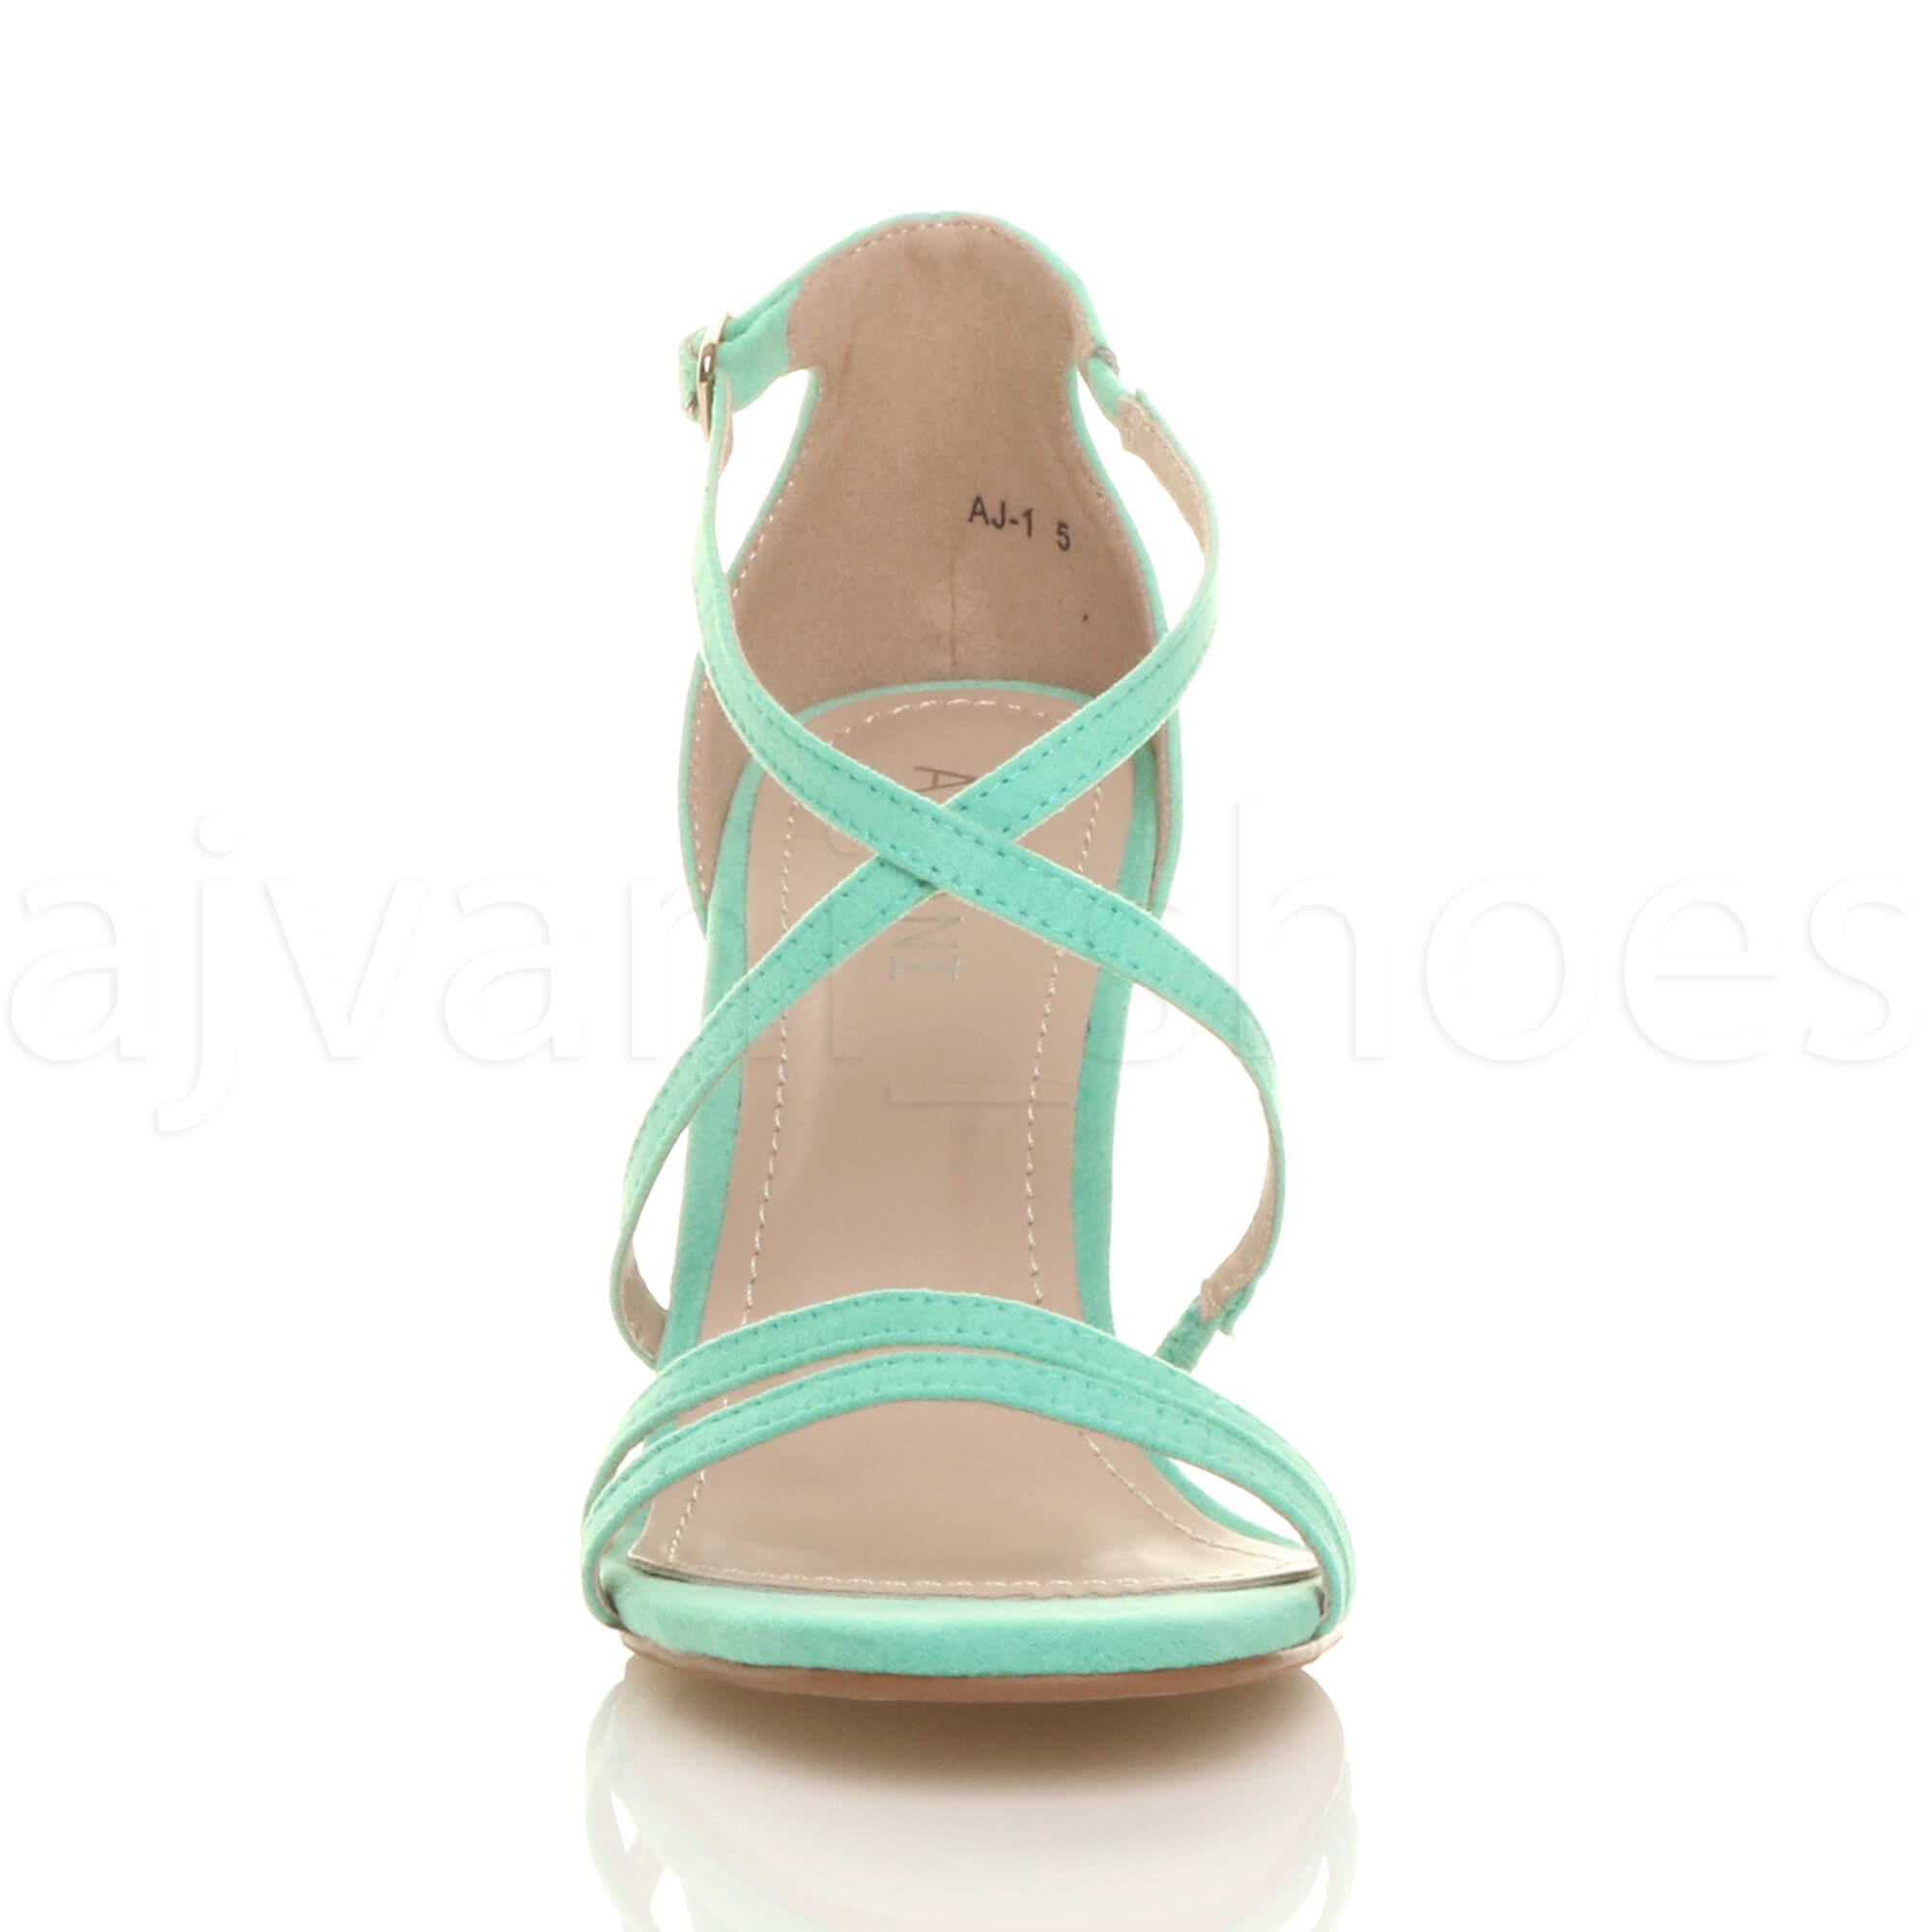 WOMENS-LADIES-MID-HIGH-HEEL-STRAPPY-CROSSOVER-WEDDING-PROM-SANDALS-SHOES-SIZE thumbnail 76